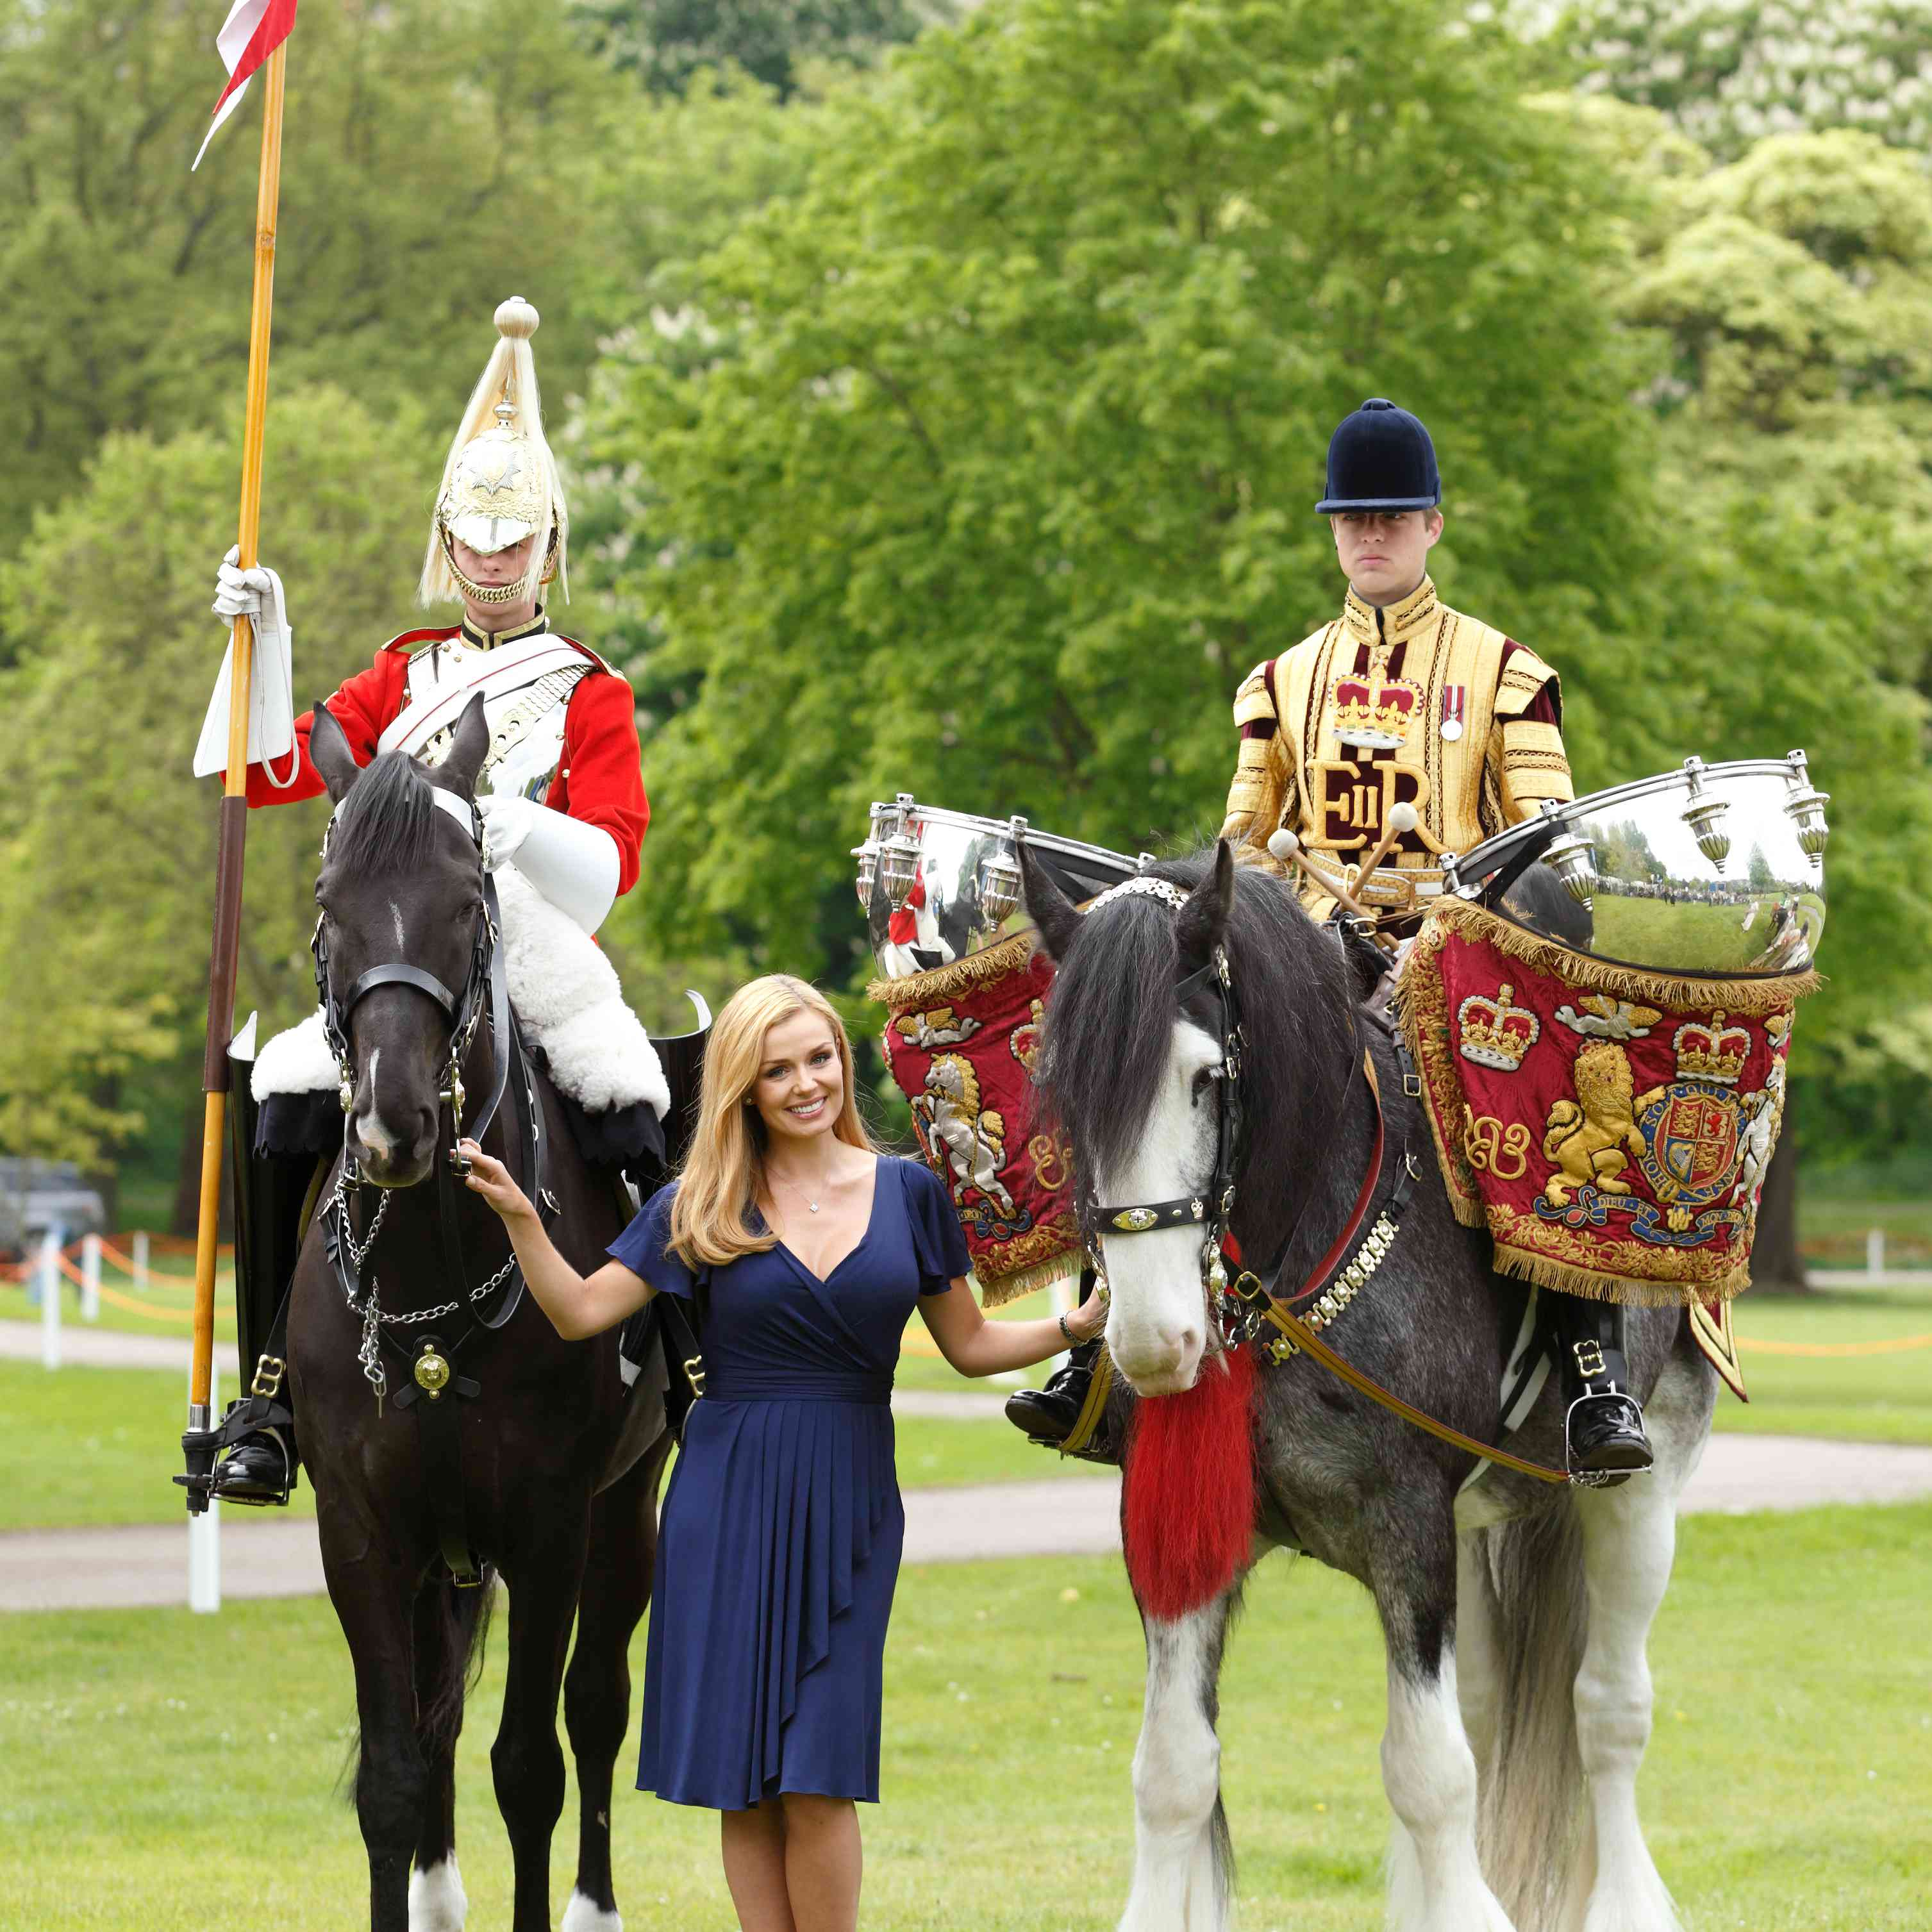 Bay Drum Horse and Queen's Cavalry horse posing after a procession